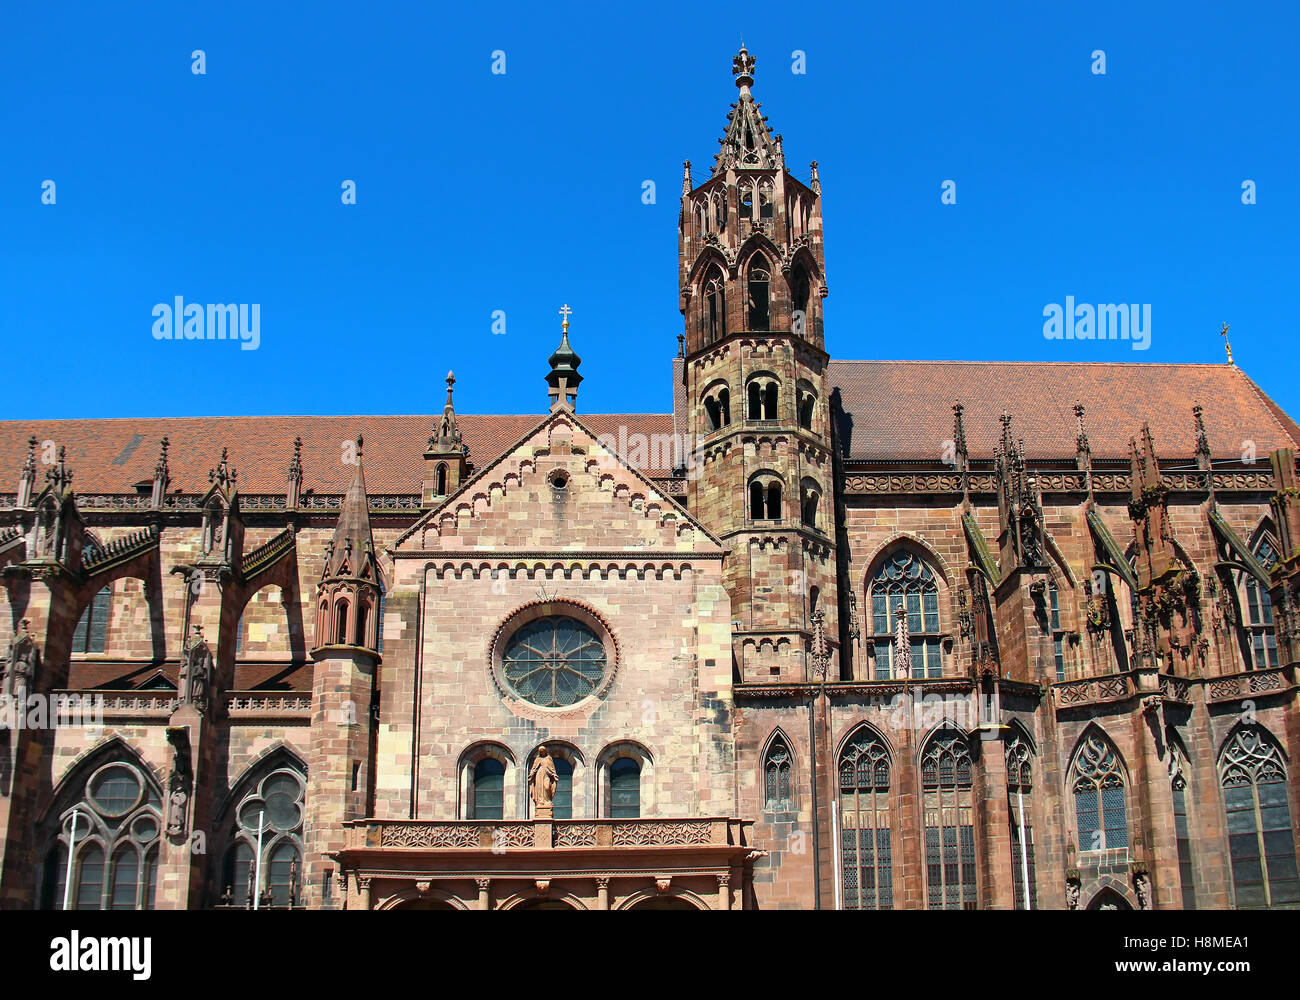 freiburg minster freiburger munster in freiburg im breisgau stock photo royalty free image. Black Bedroom Furniture Sets. Home Design Ideas